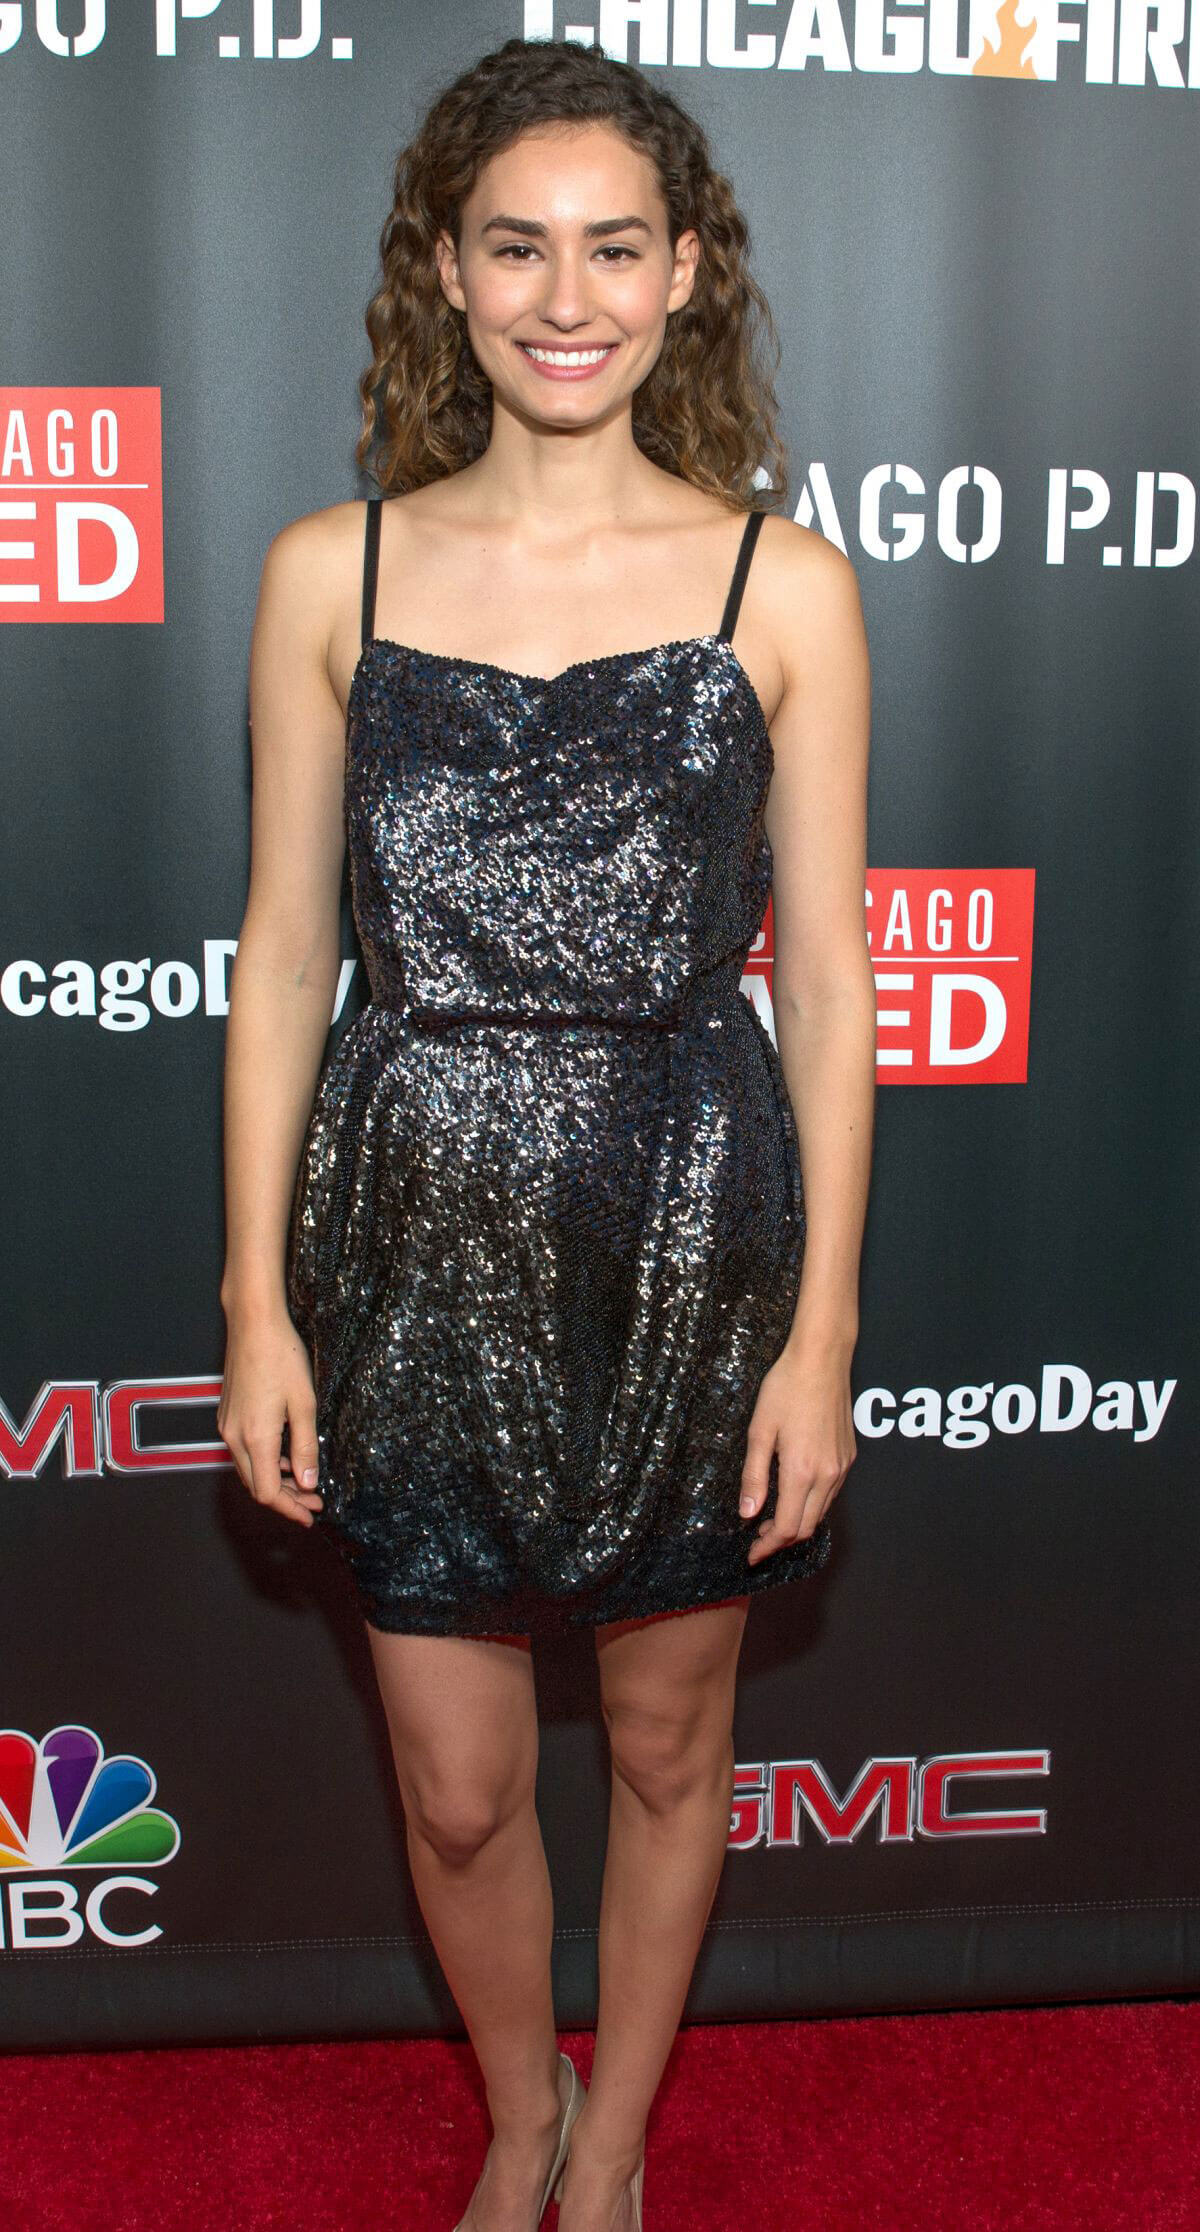 Rachel DiPillo wears Black Shining Short Dress at 3rd Annual NBC One Chicago Party in Chicago